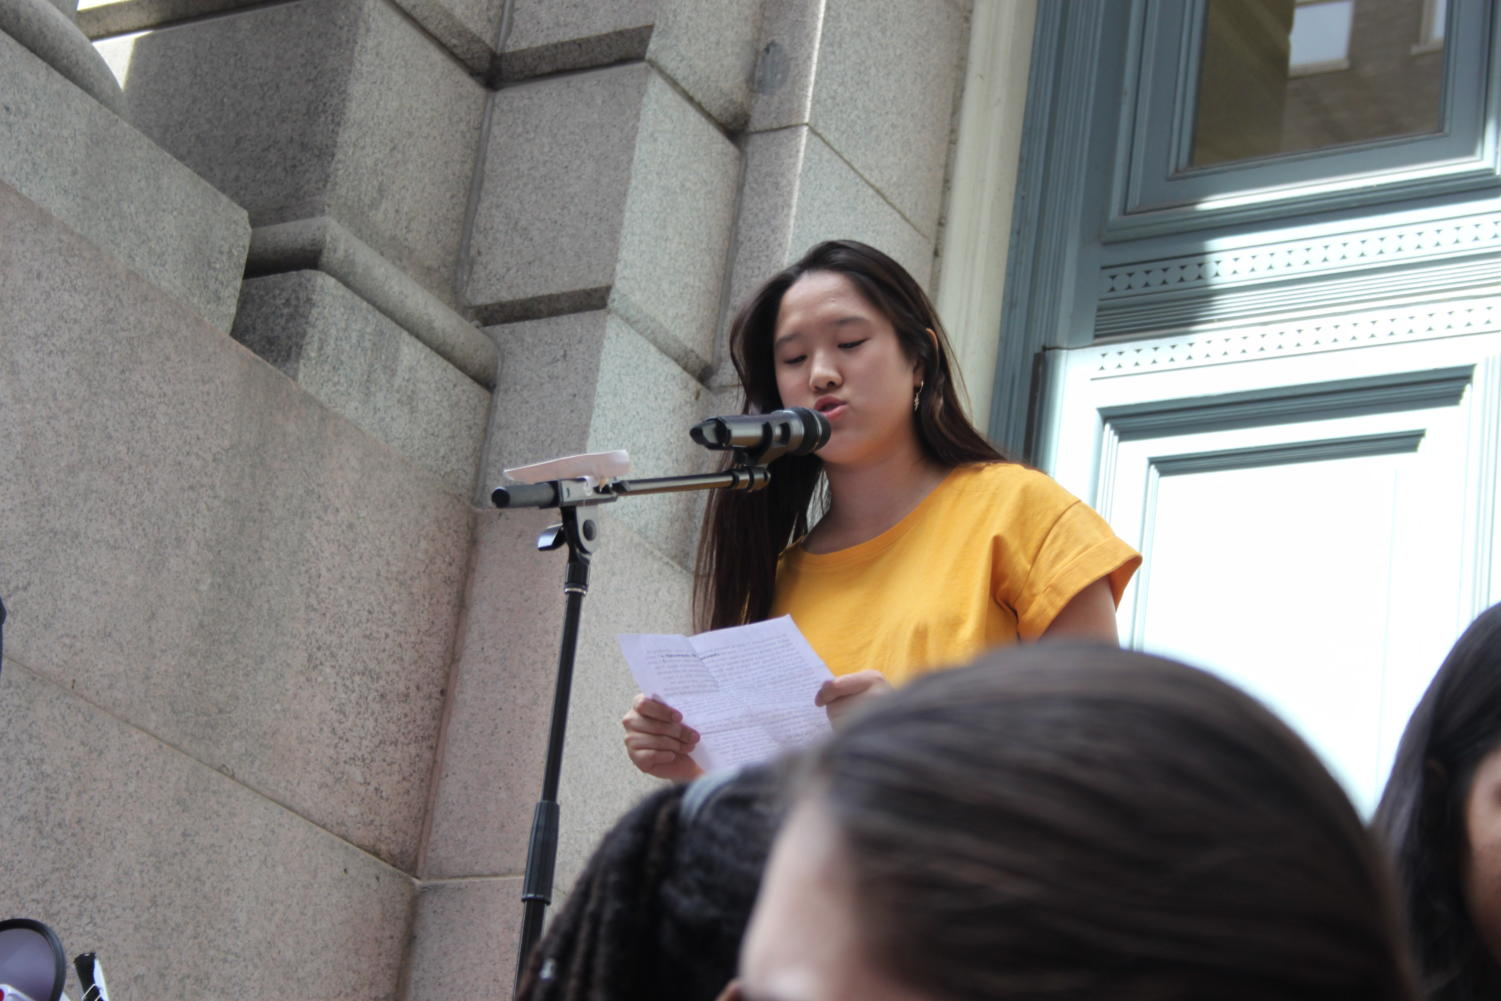 Tiffany+Yoon%2C+junior+at+MHS%2C+speaks+about+gun+violence+and+her+experience+as+an+immigrant.+%E2%80%9CWhen+I+was+writing+my+speech+I+was+trying+to+look+at+gun+violence+as+less+of+a+political+issue+and+more+of+a+humanity+crisis%2C%E2%80%9D+Yoon+said.